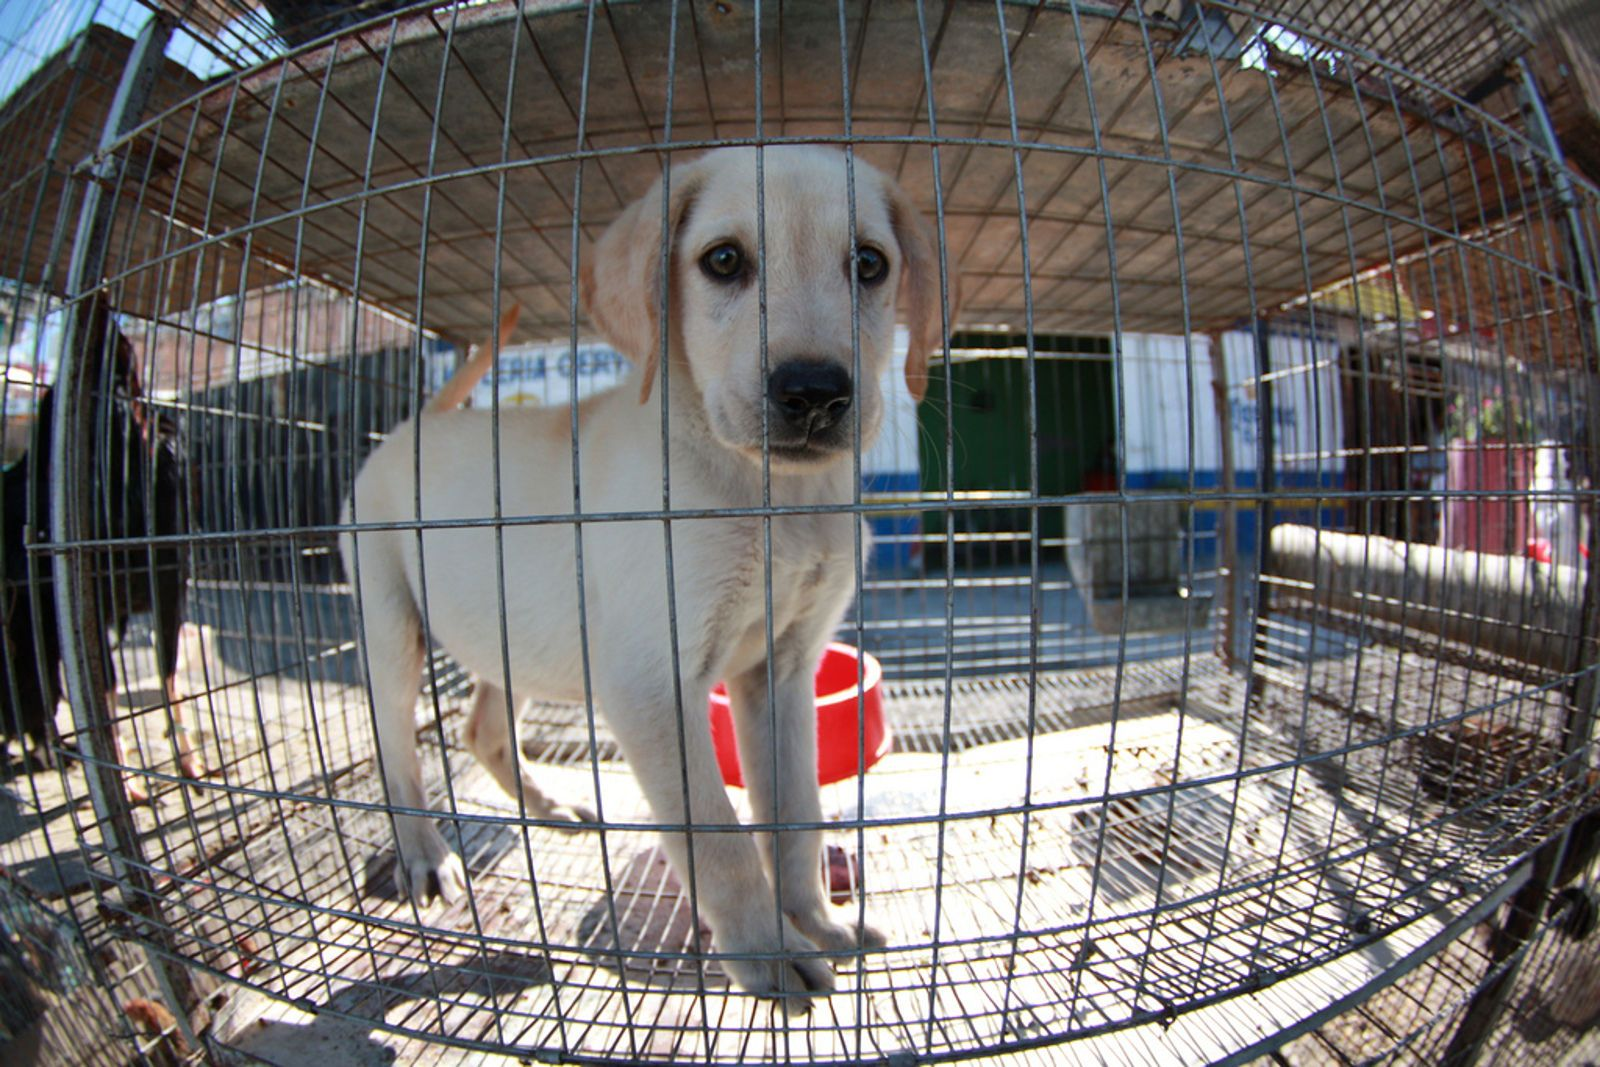 5 Things YOU Can Do to Help Stop Puppy Mills Puppy mills